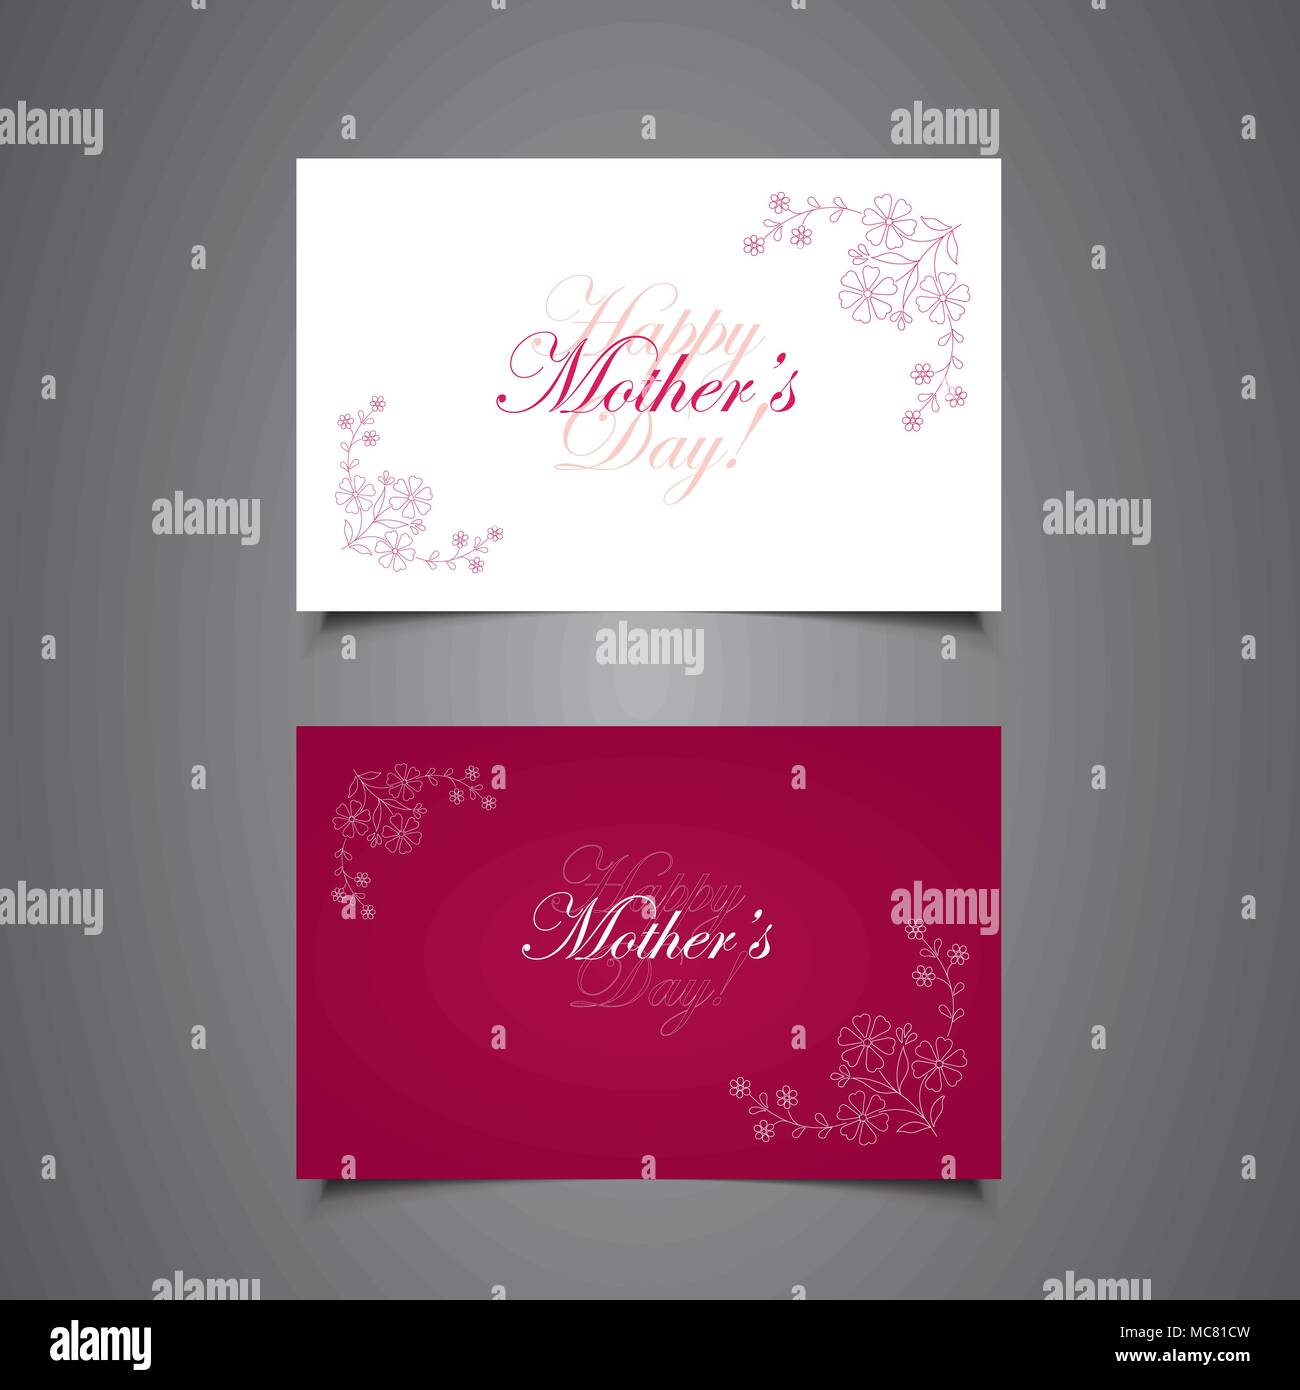 Colorful Old Fashioned Mothers Day Greeting Card Design